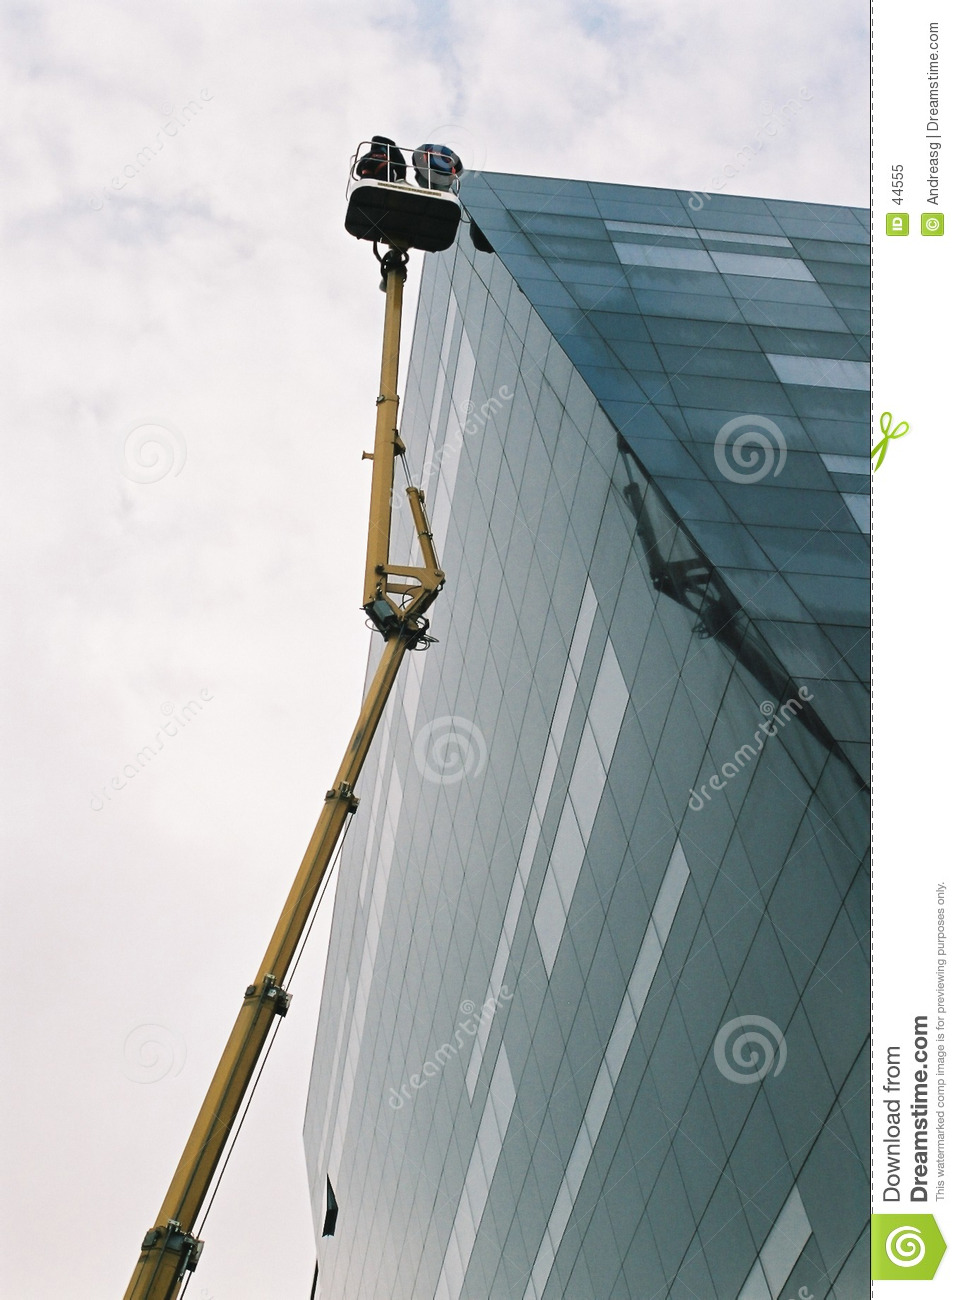 Lift on building exterior